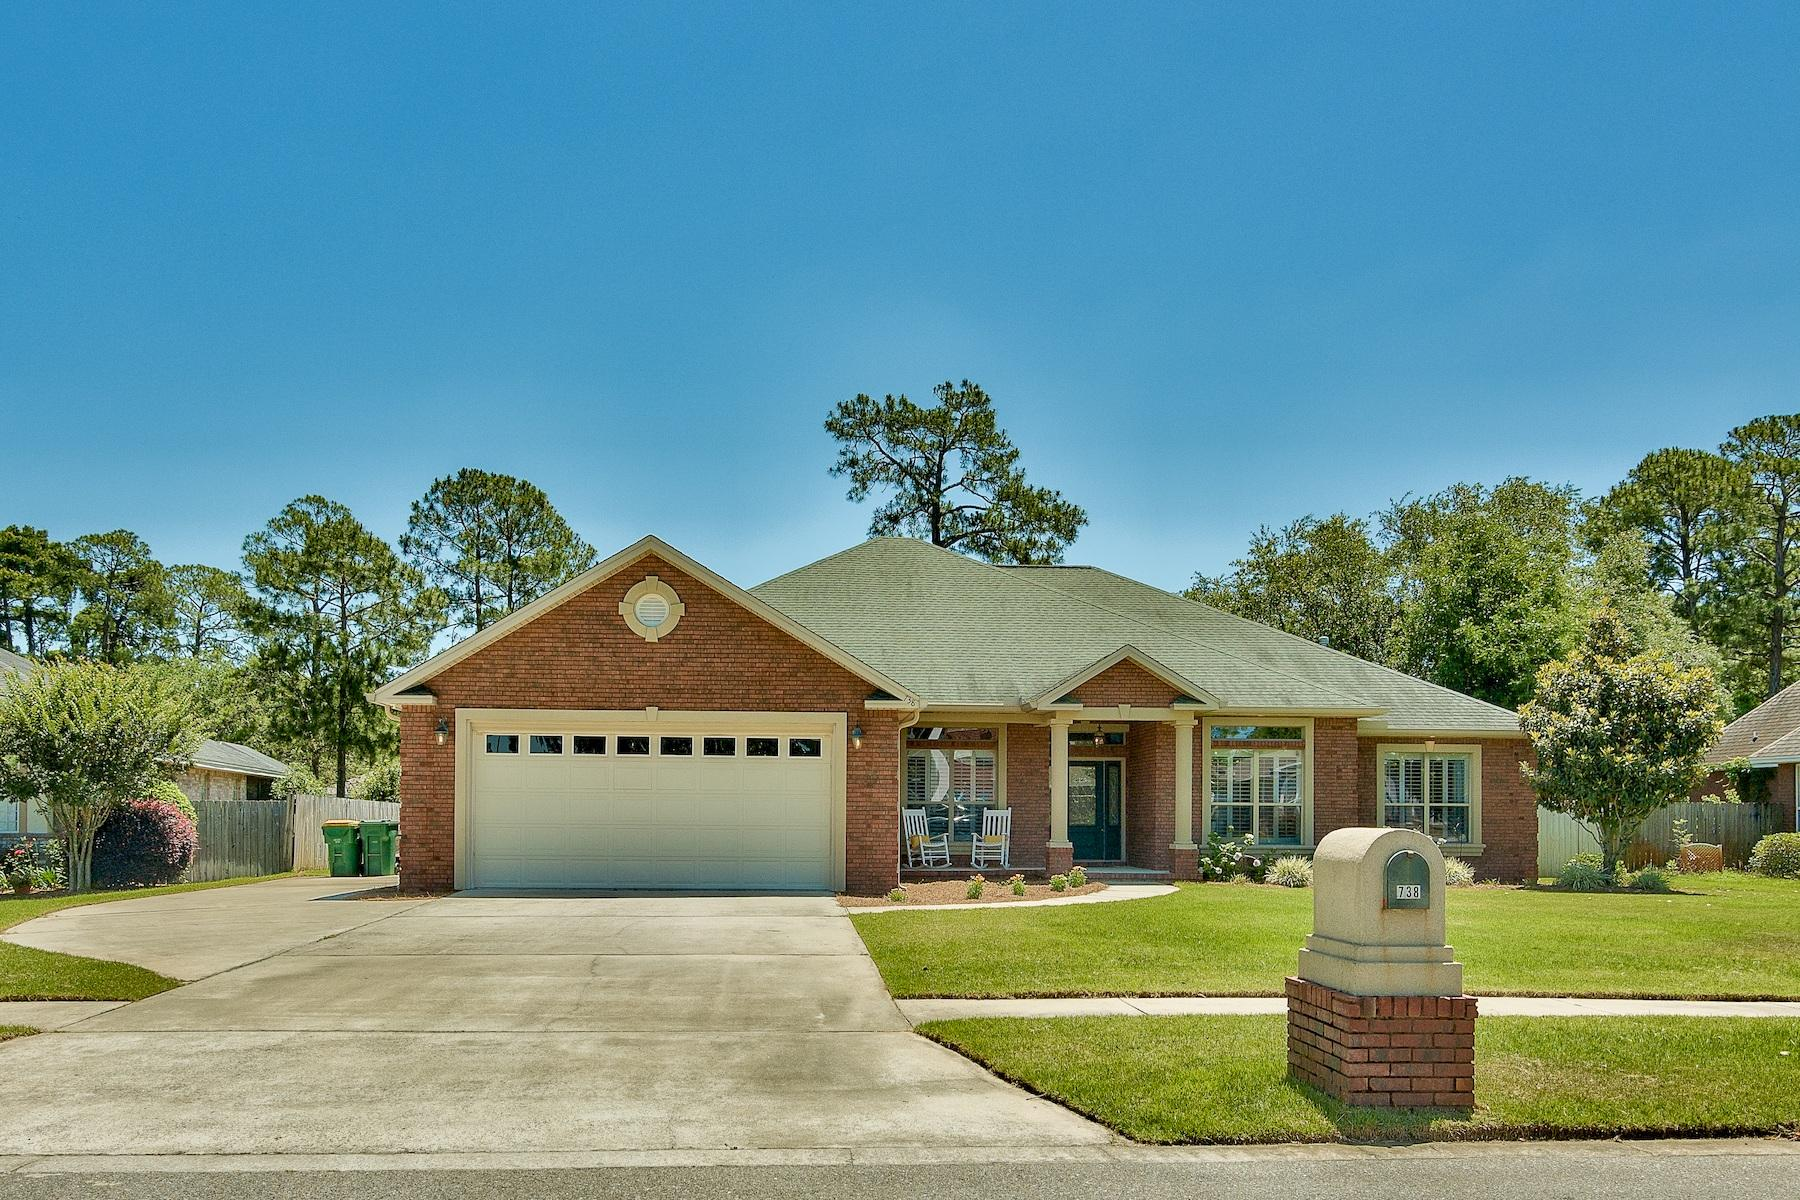 738  Persimmon Way, Niceville in Okaloosa County, FL 32578 Home for Sale